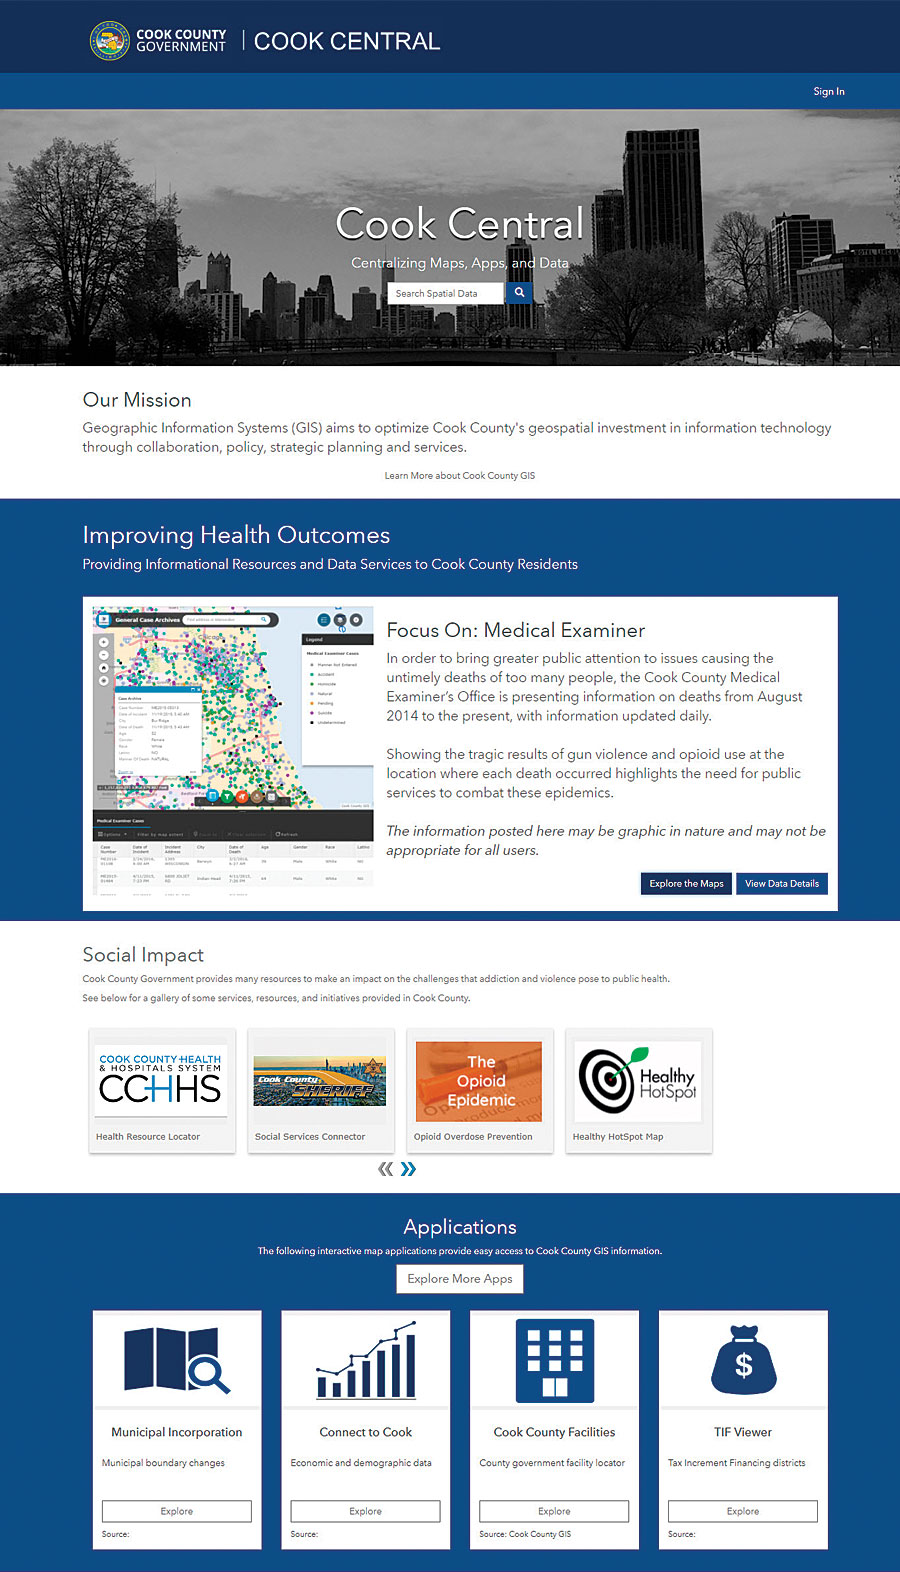 Cook Central serves as a public landing page for all the county's open spatial data and interactive mapping apps and makes it easier for partner agencies and local governments to access data.